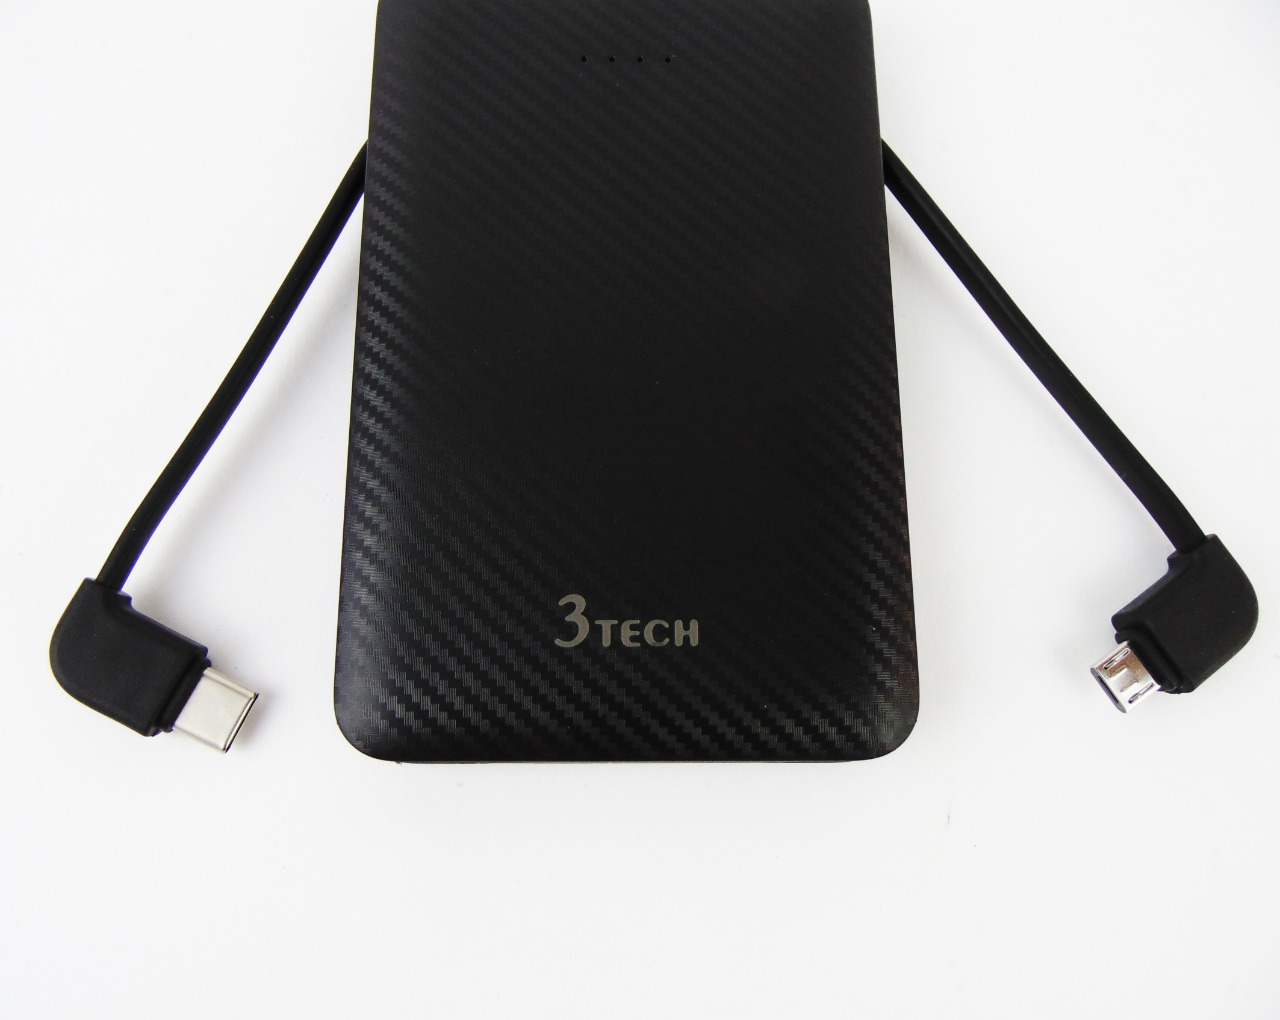 Power Bank 3Tech 5000mAh with 2 cables